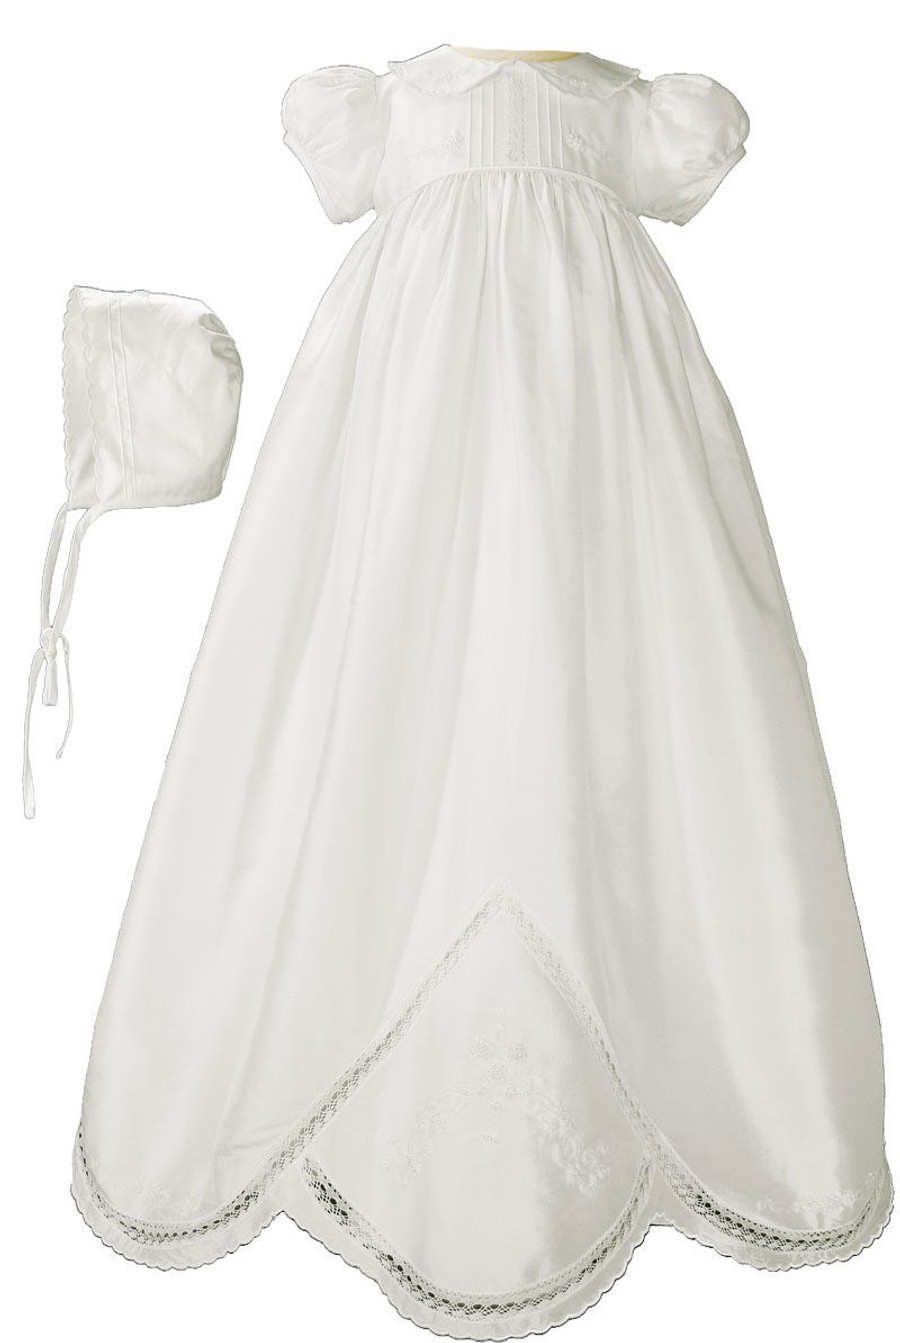 Girls White Gowns